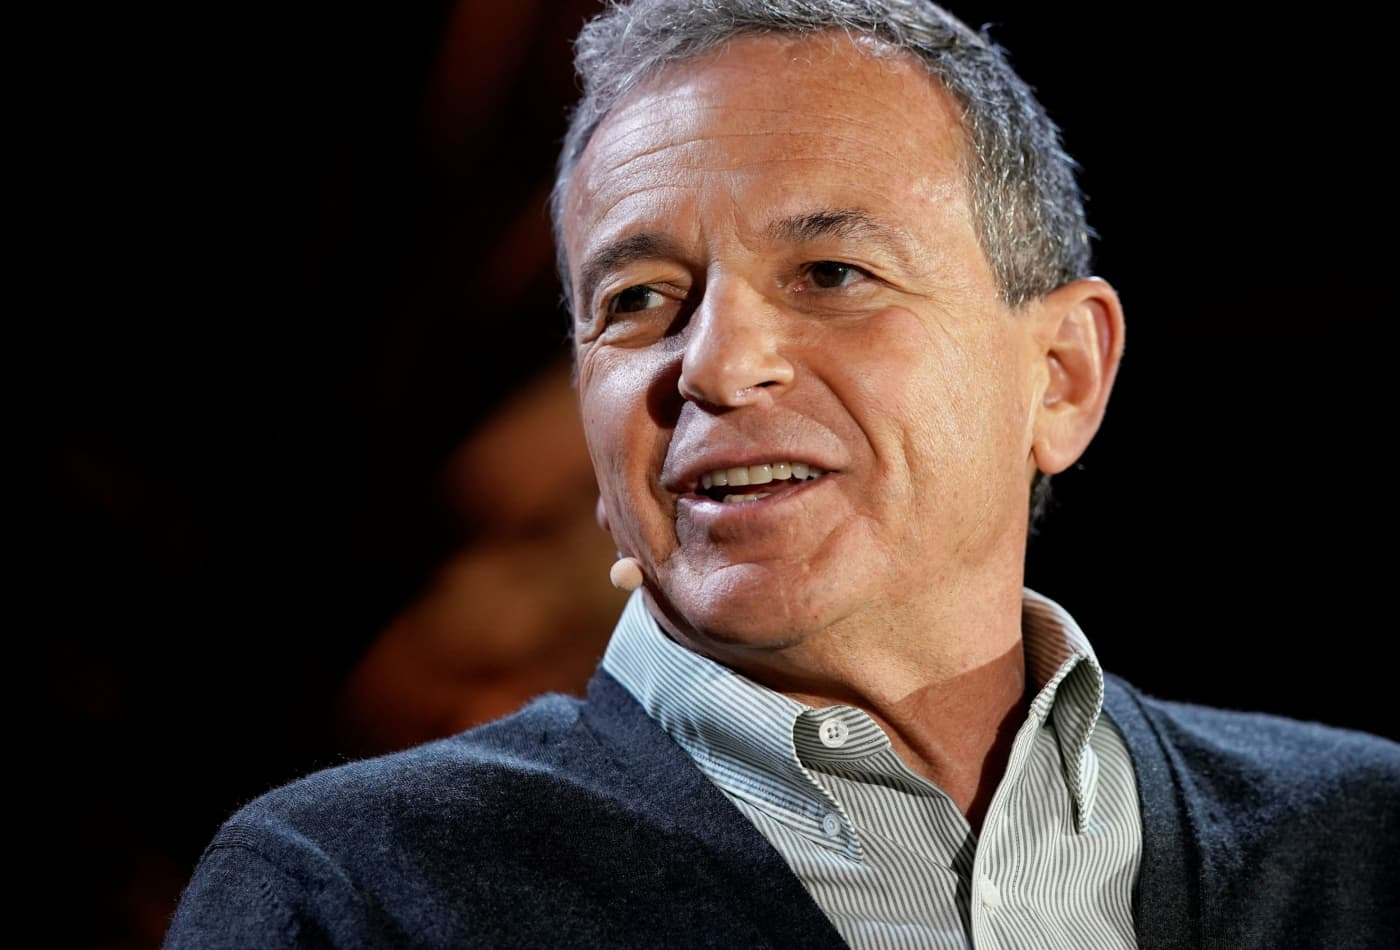 Bob Iger to step down as Disney CEO, effective immediately